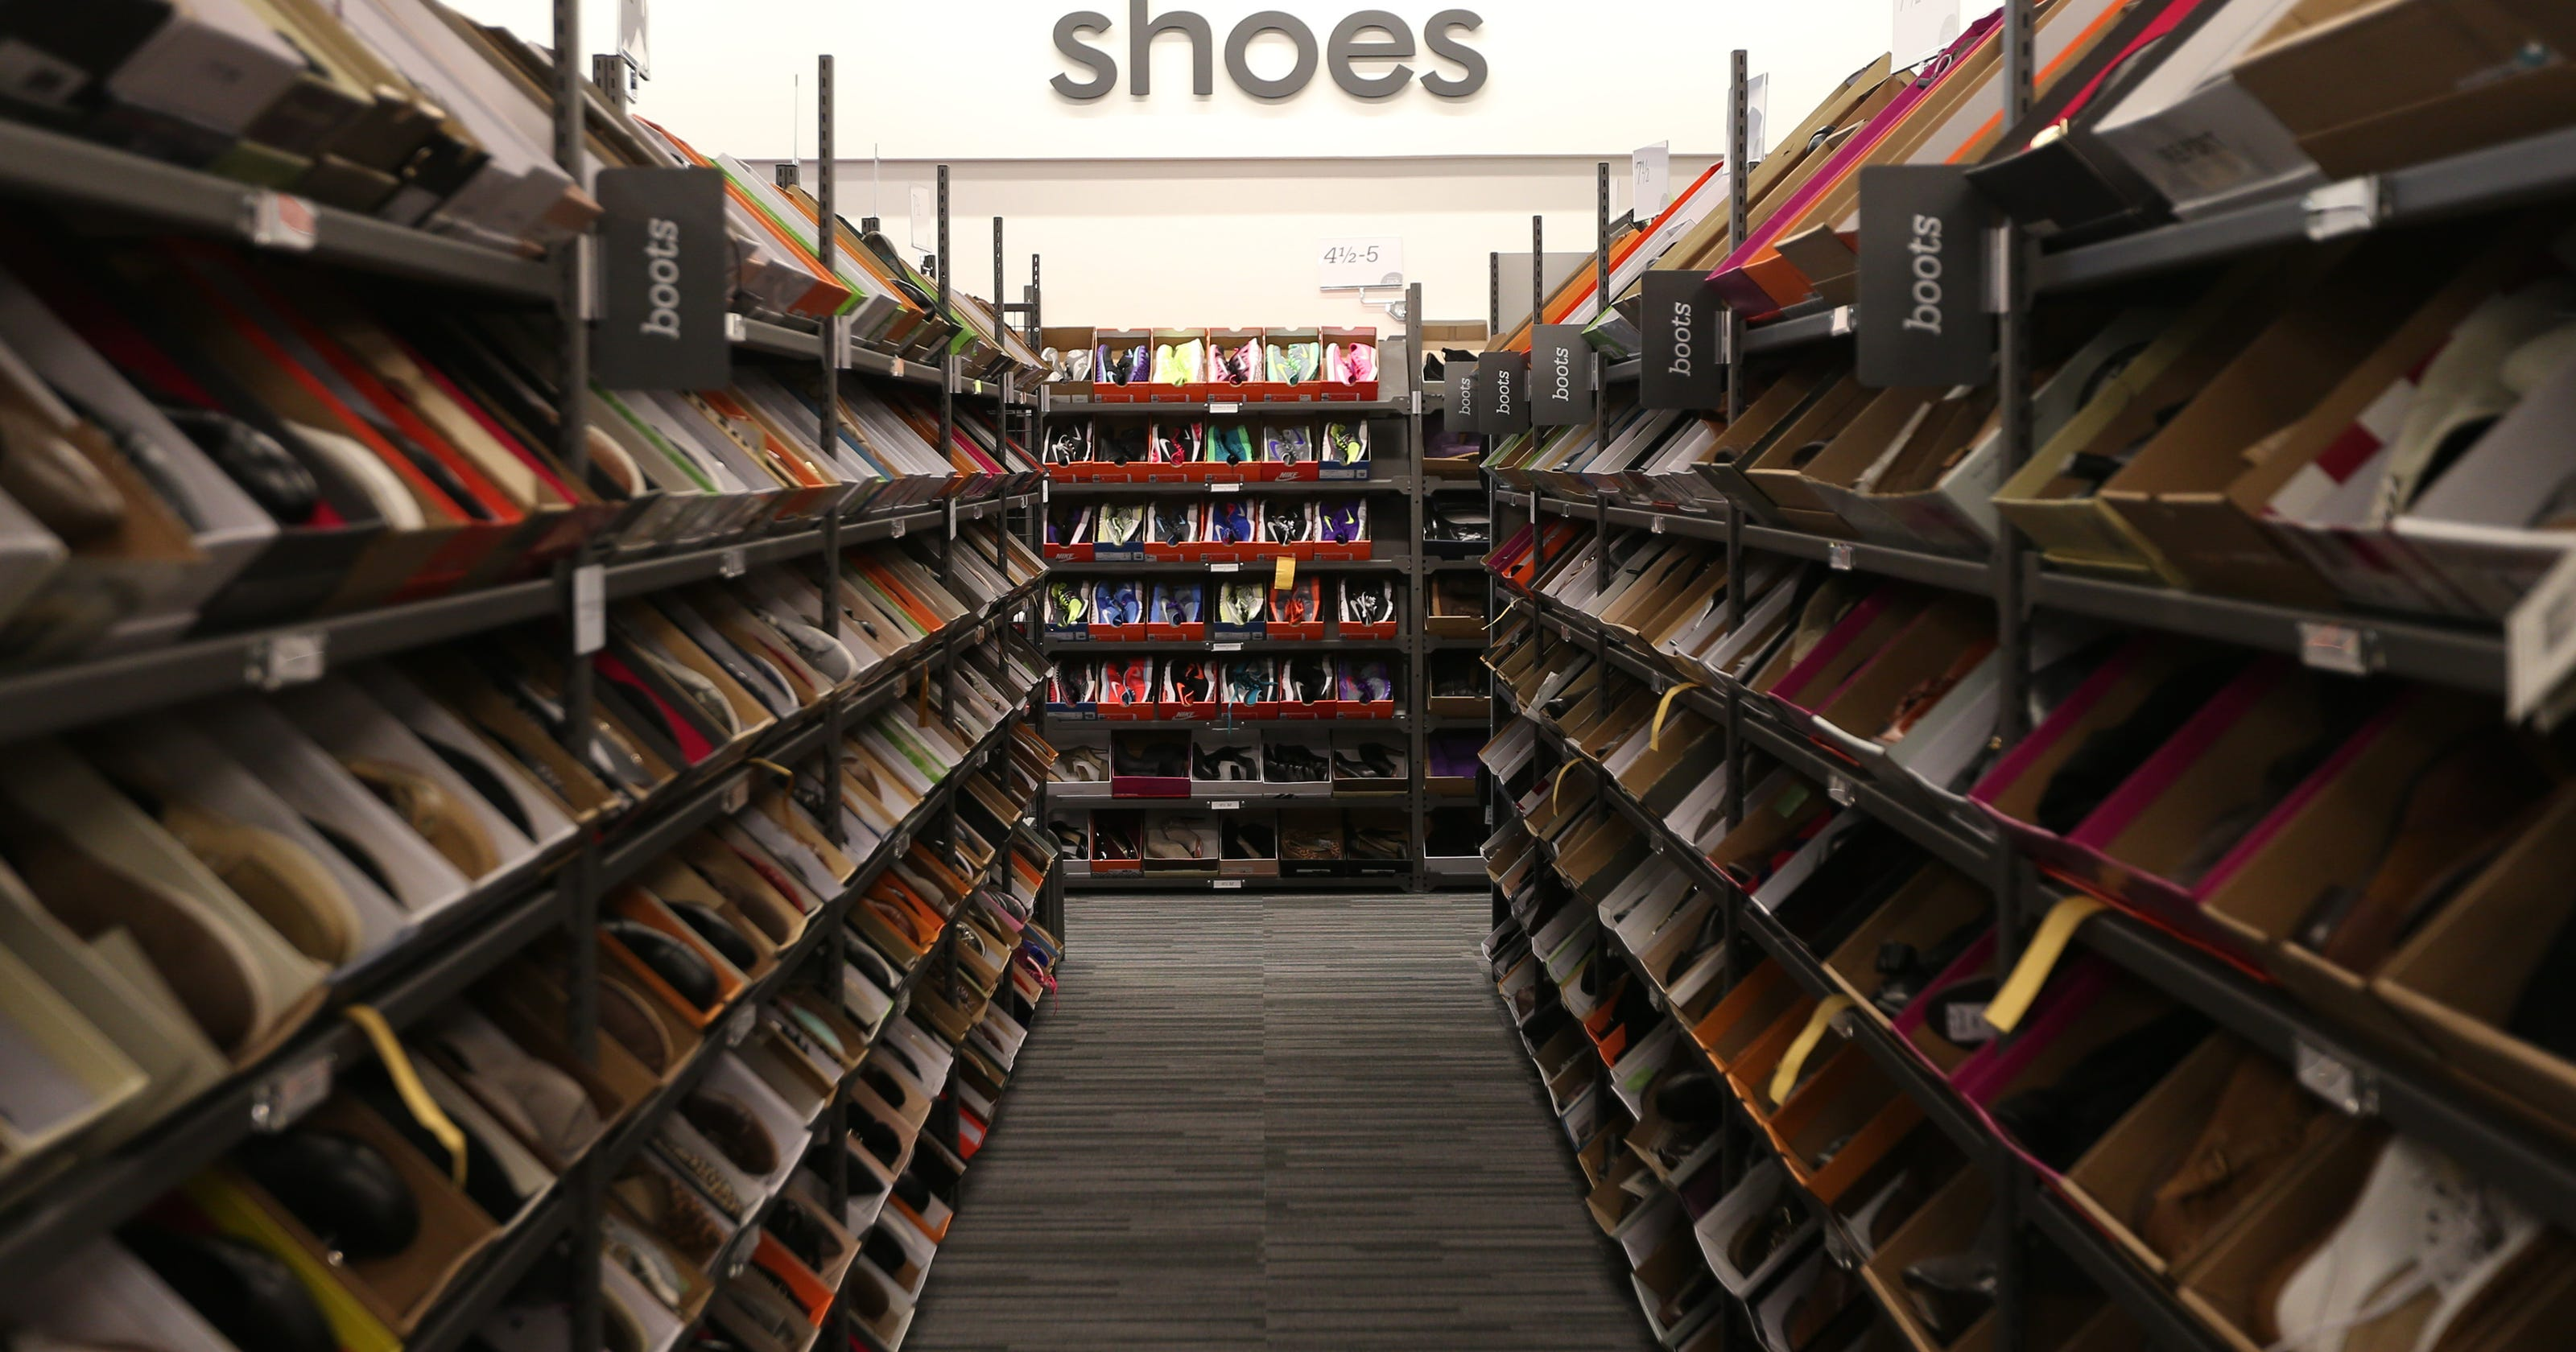 6c724b85a6c8e Nordstrom Rack opens today in West Des Moines